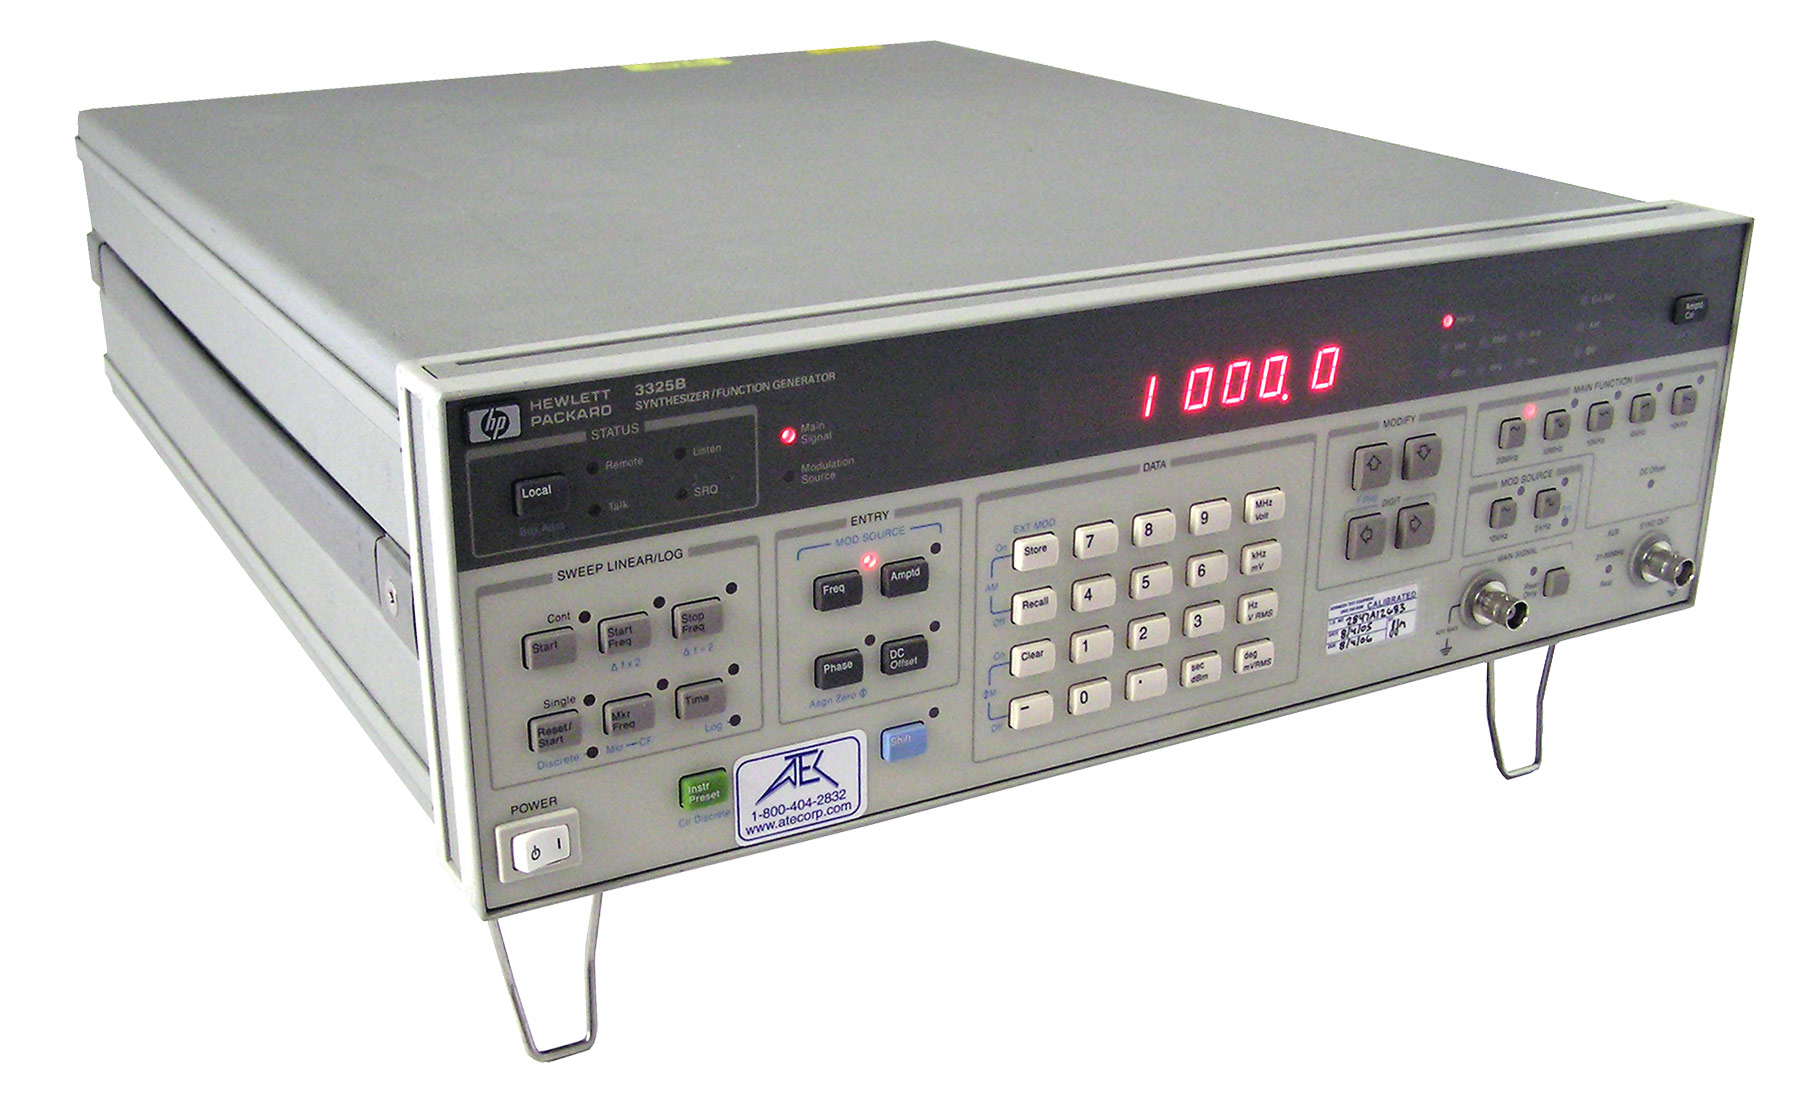 Keysight 3325B Function Generator, 21 MHz